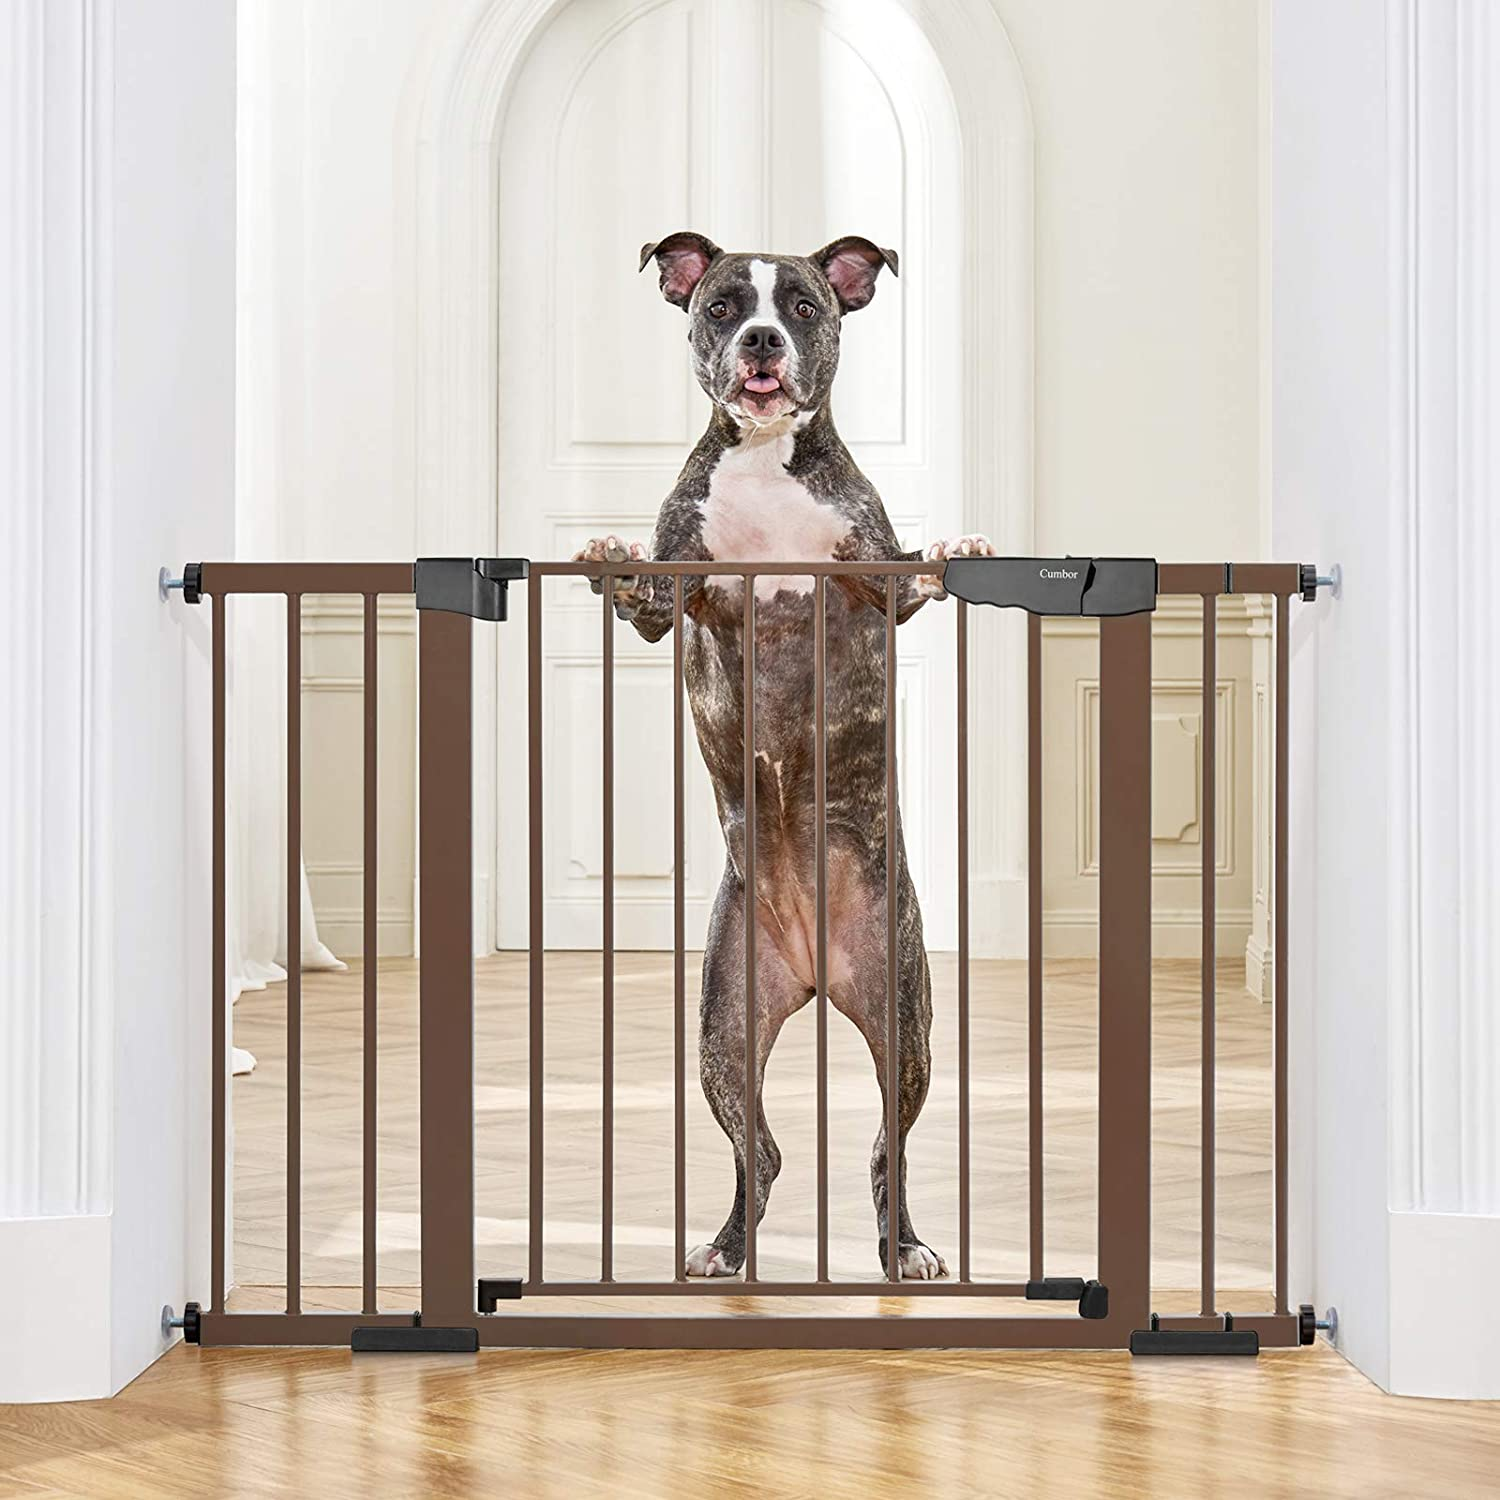 The Cumbor Baby Gate for Stairs and Doorways